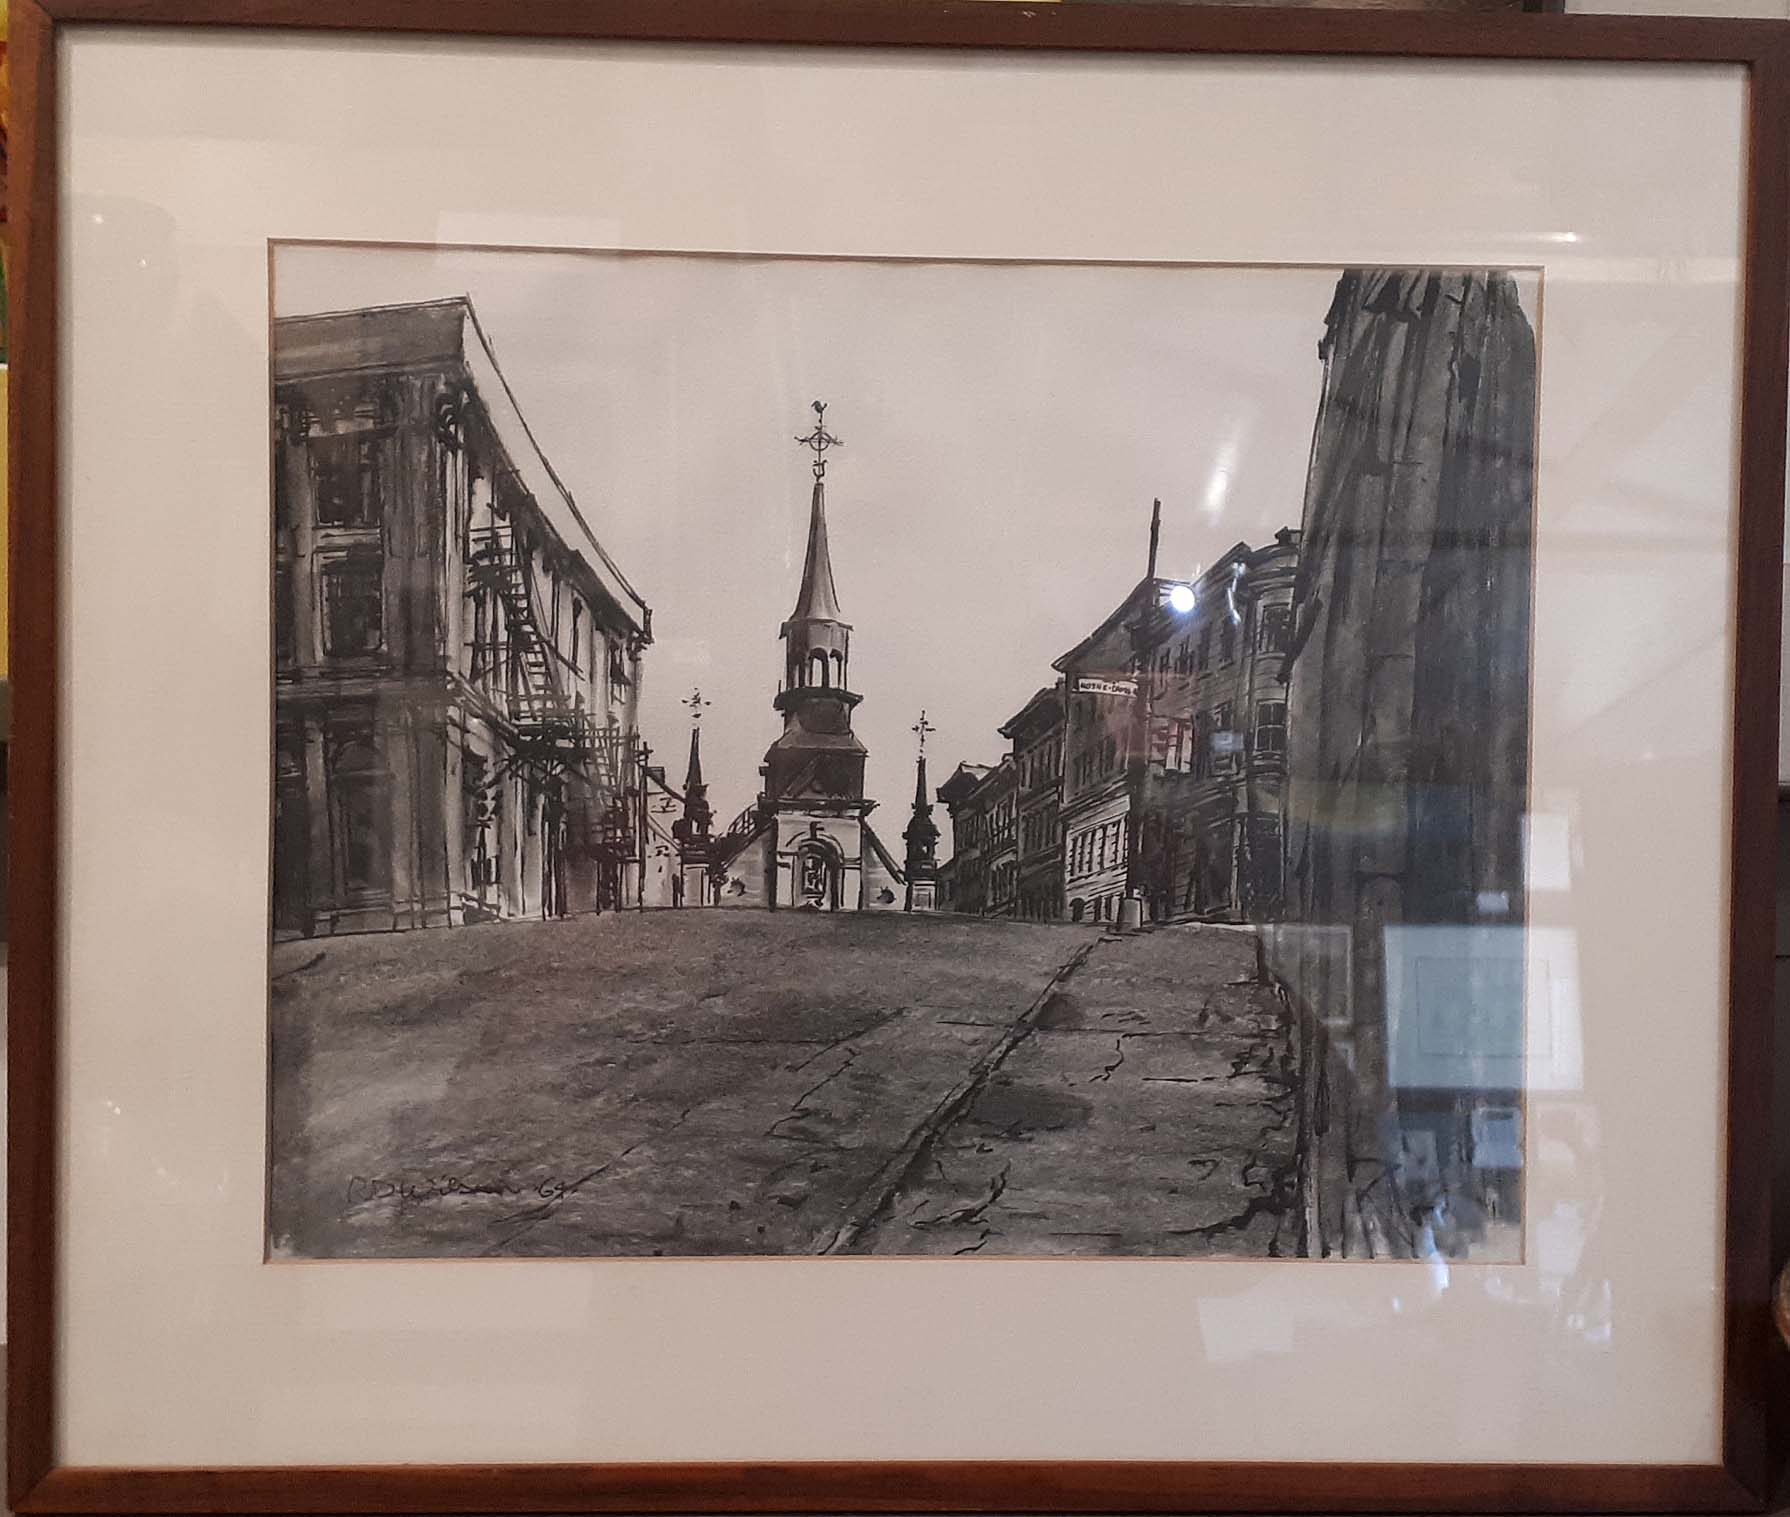 Richard Dinnis Wilson (1920-1994) Montreal, Graphite and Ink, Size: 21 x 17, Price: 135.00